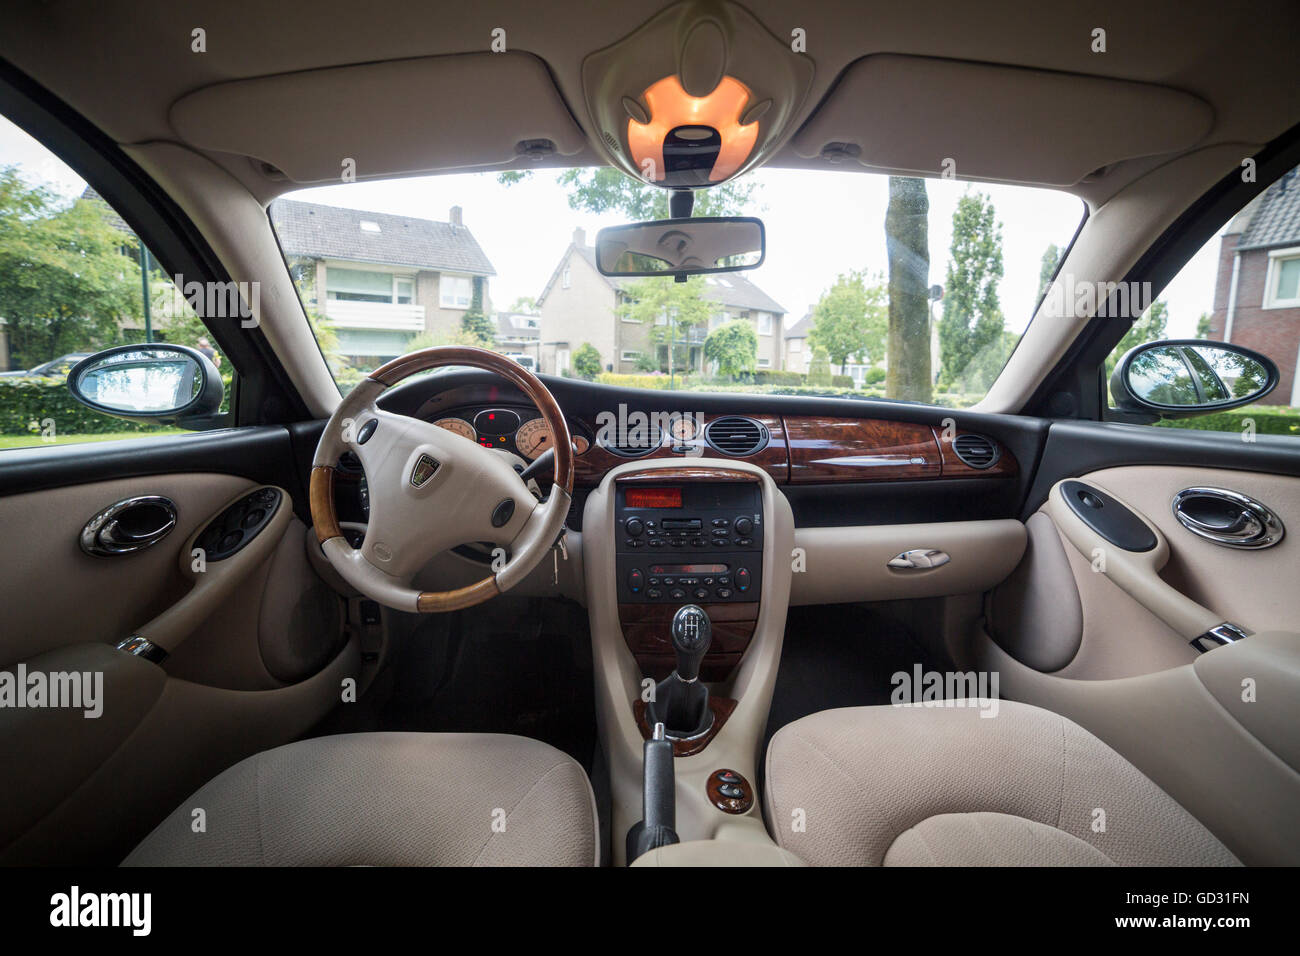 rover 75 car interior color green with a walnut dashboard stock photo royalty free image. Black Bedroom Furniture Sets. Home Design Ideas